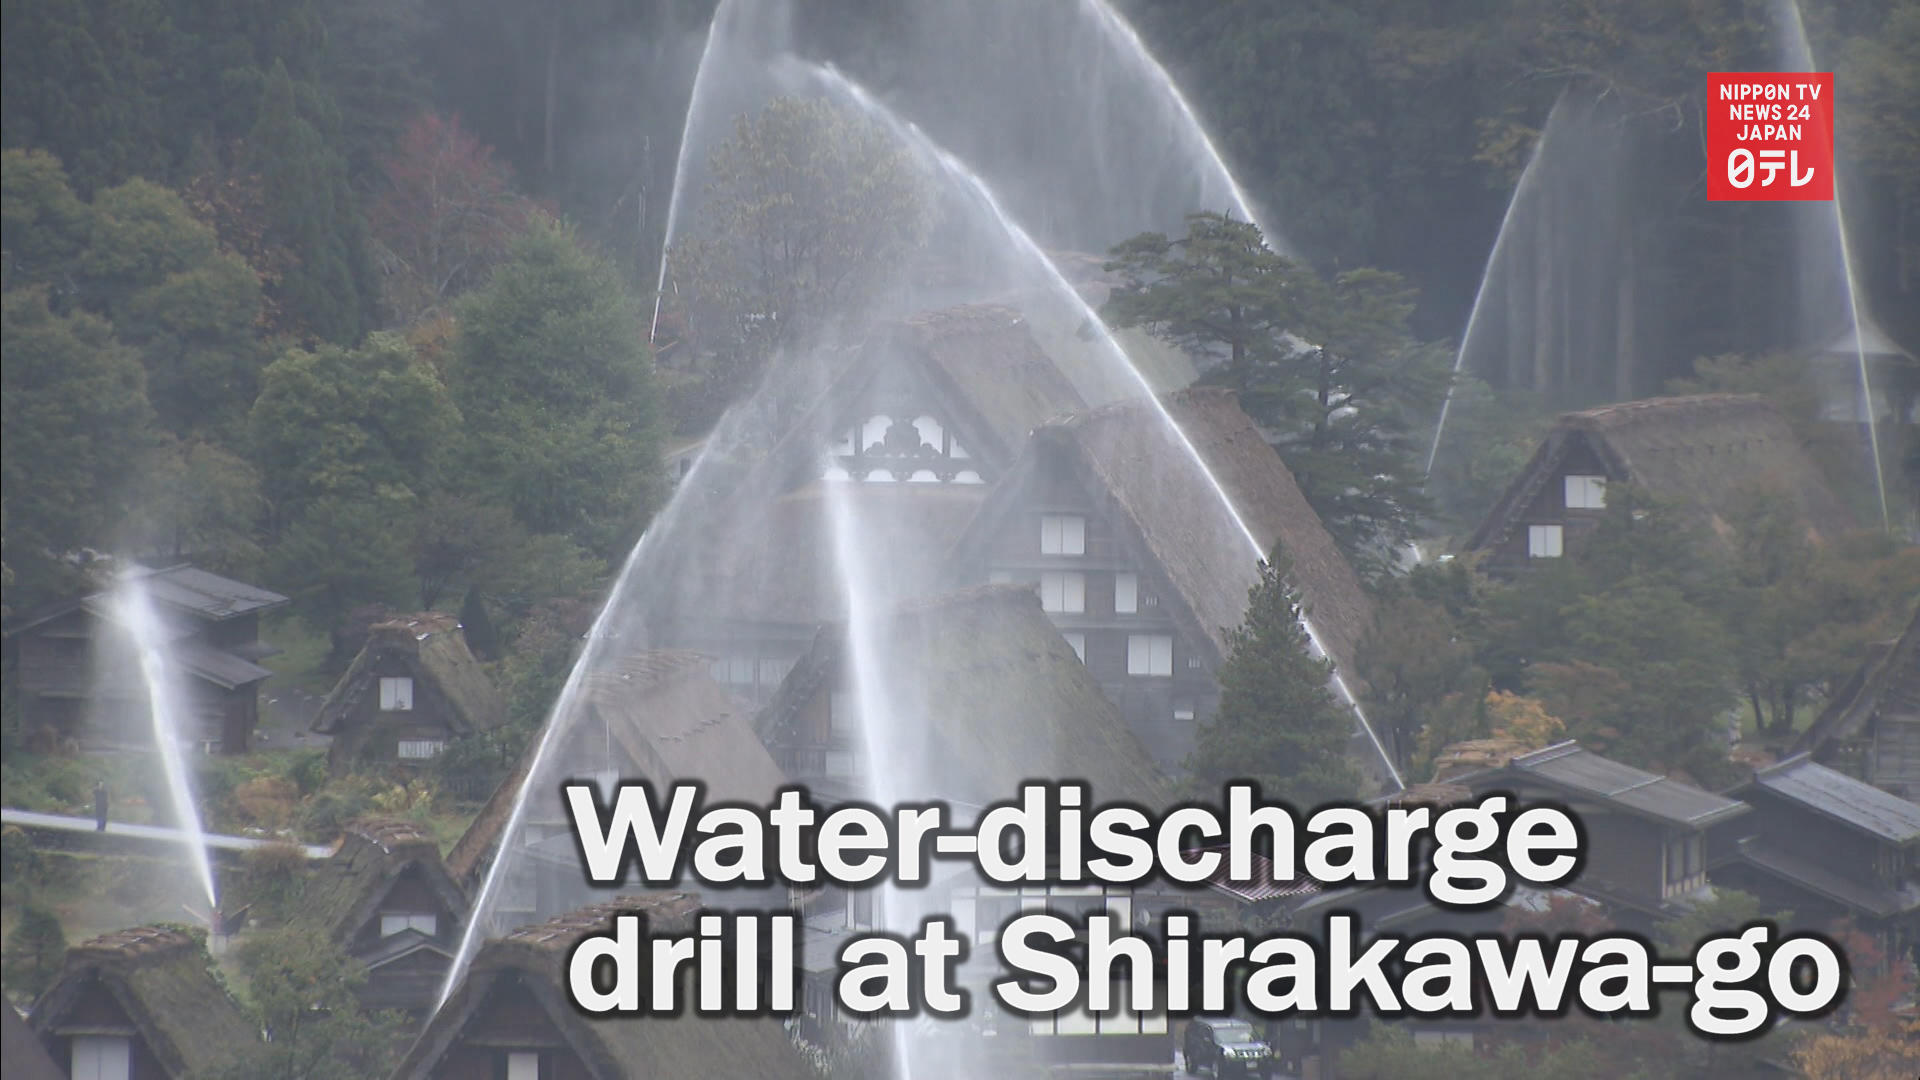 Water discharge drill at Shirakawago